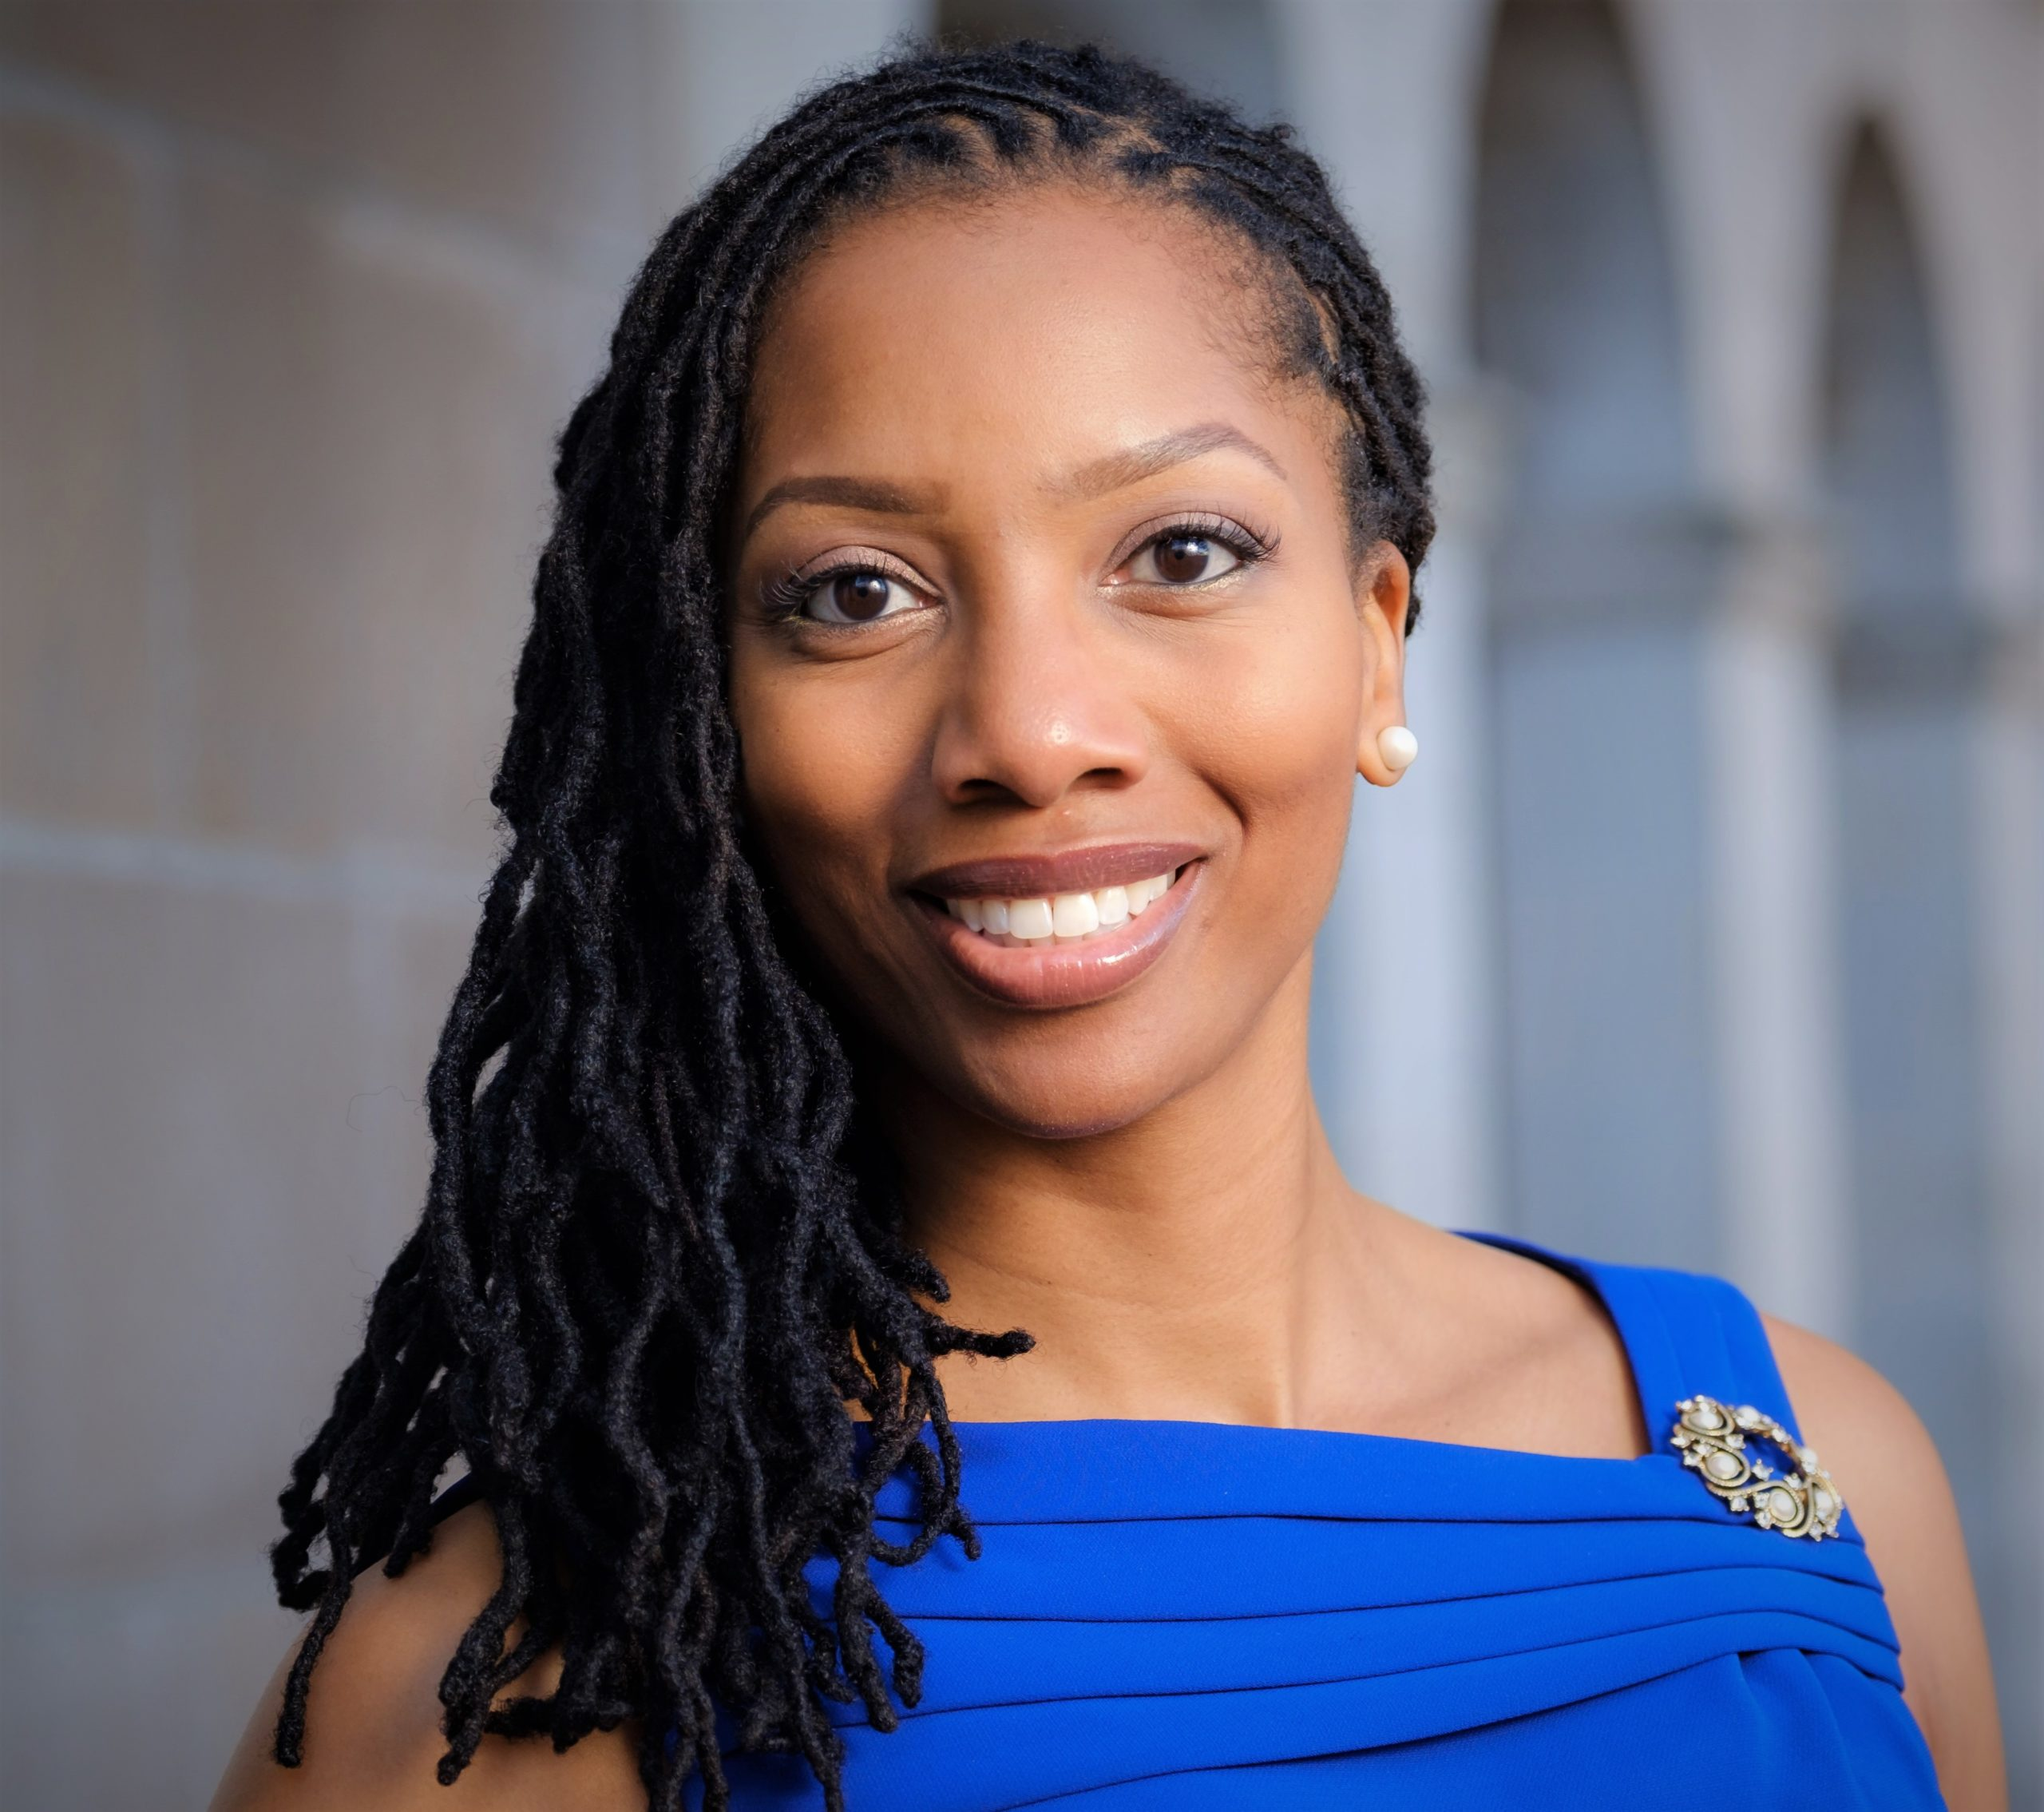 Rev. K. Monet Rice-Jalloh